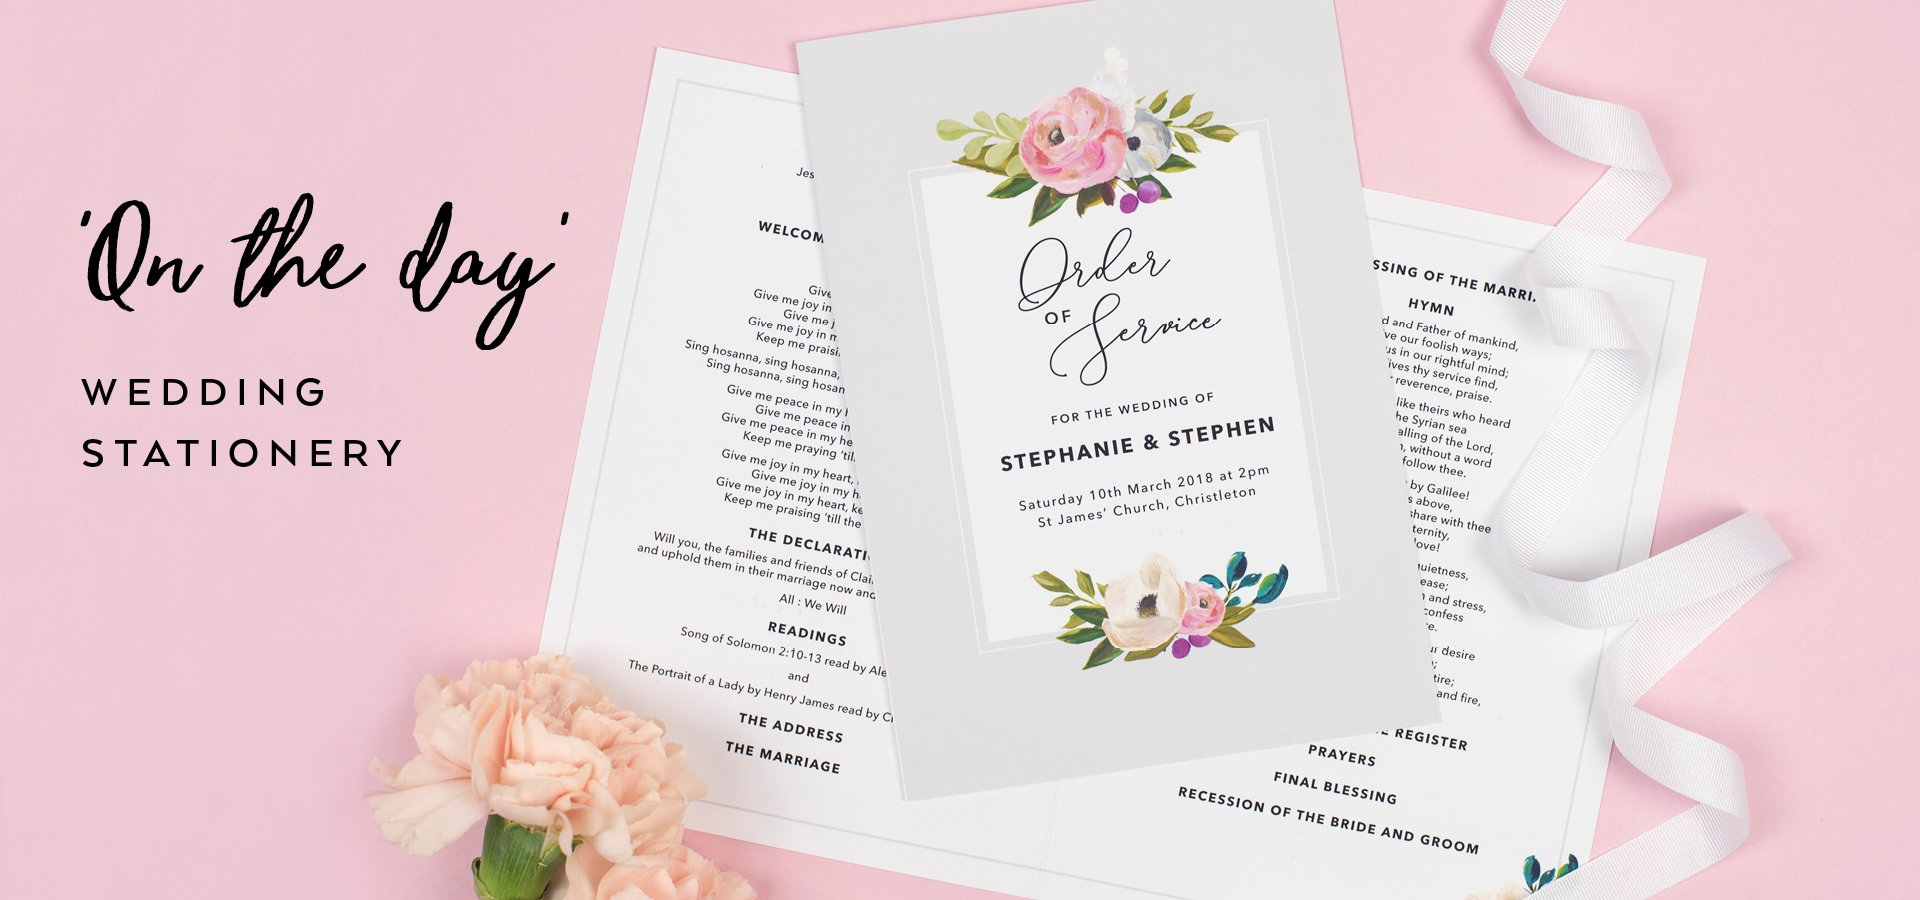 Wedding stationery and paper goods project pretty welcome to project pretty the home of quirky and unique wedding invitations stationery and paper goods stopboris Image collections